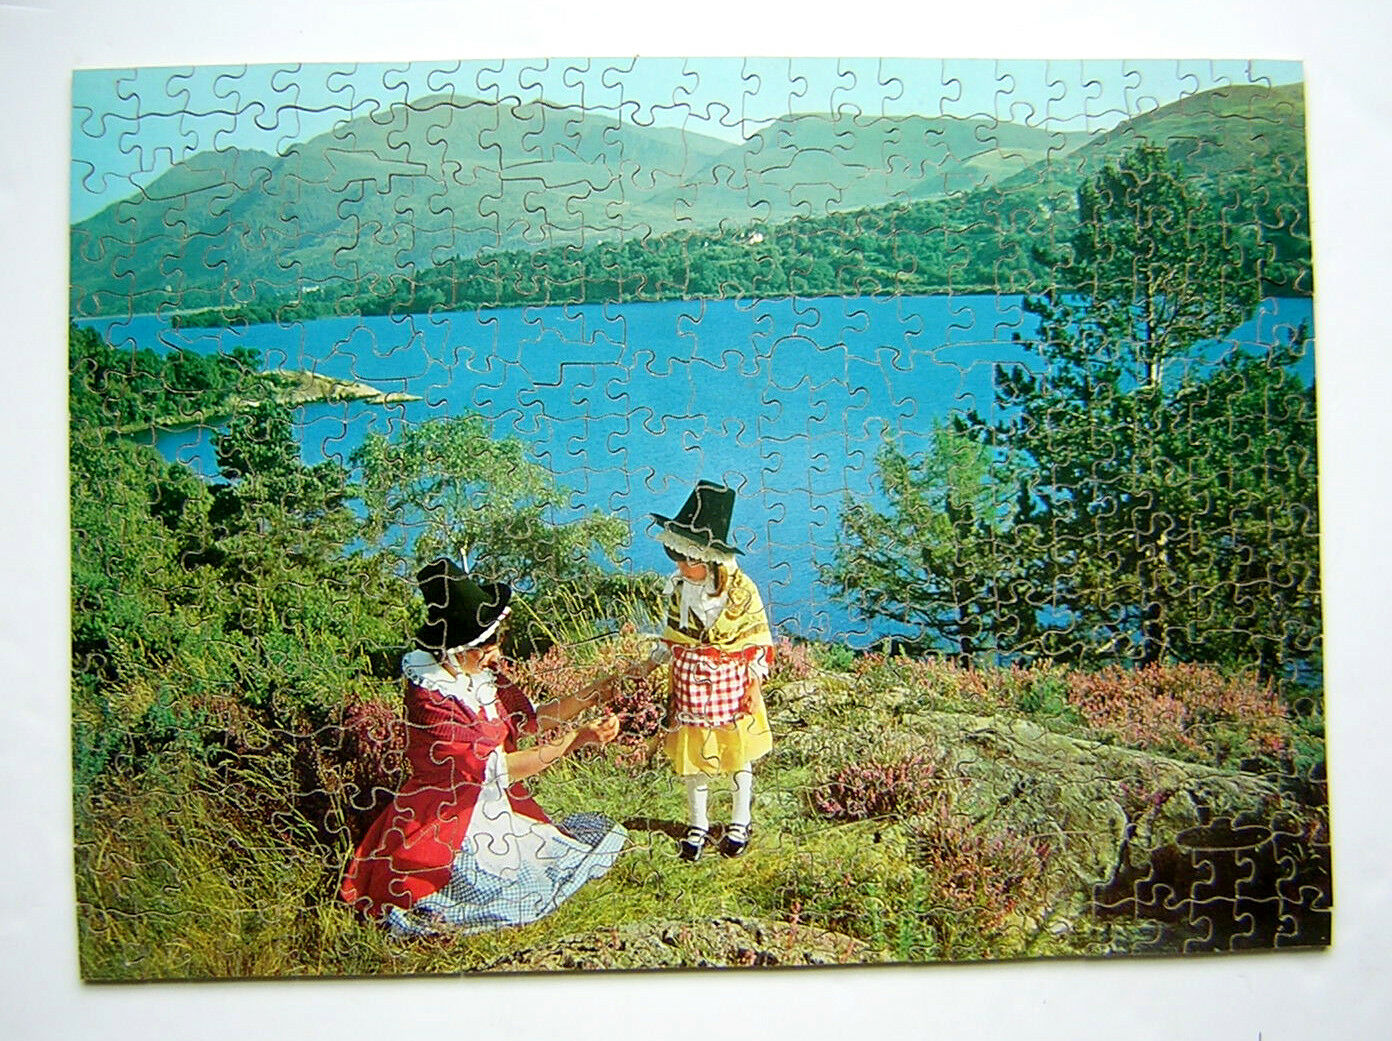 PRIDE OF WALES, Welsh Costume  Victory gold Box Jigsaw Puzzle 400pcs. Excellent